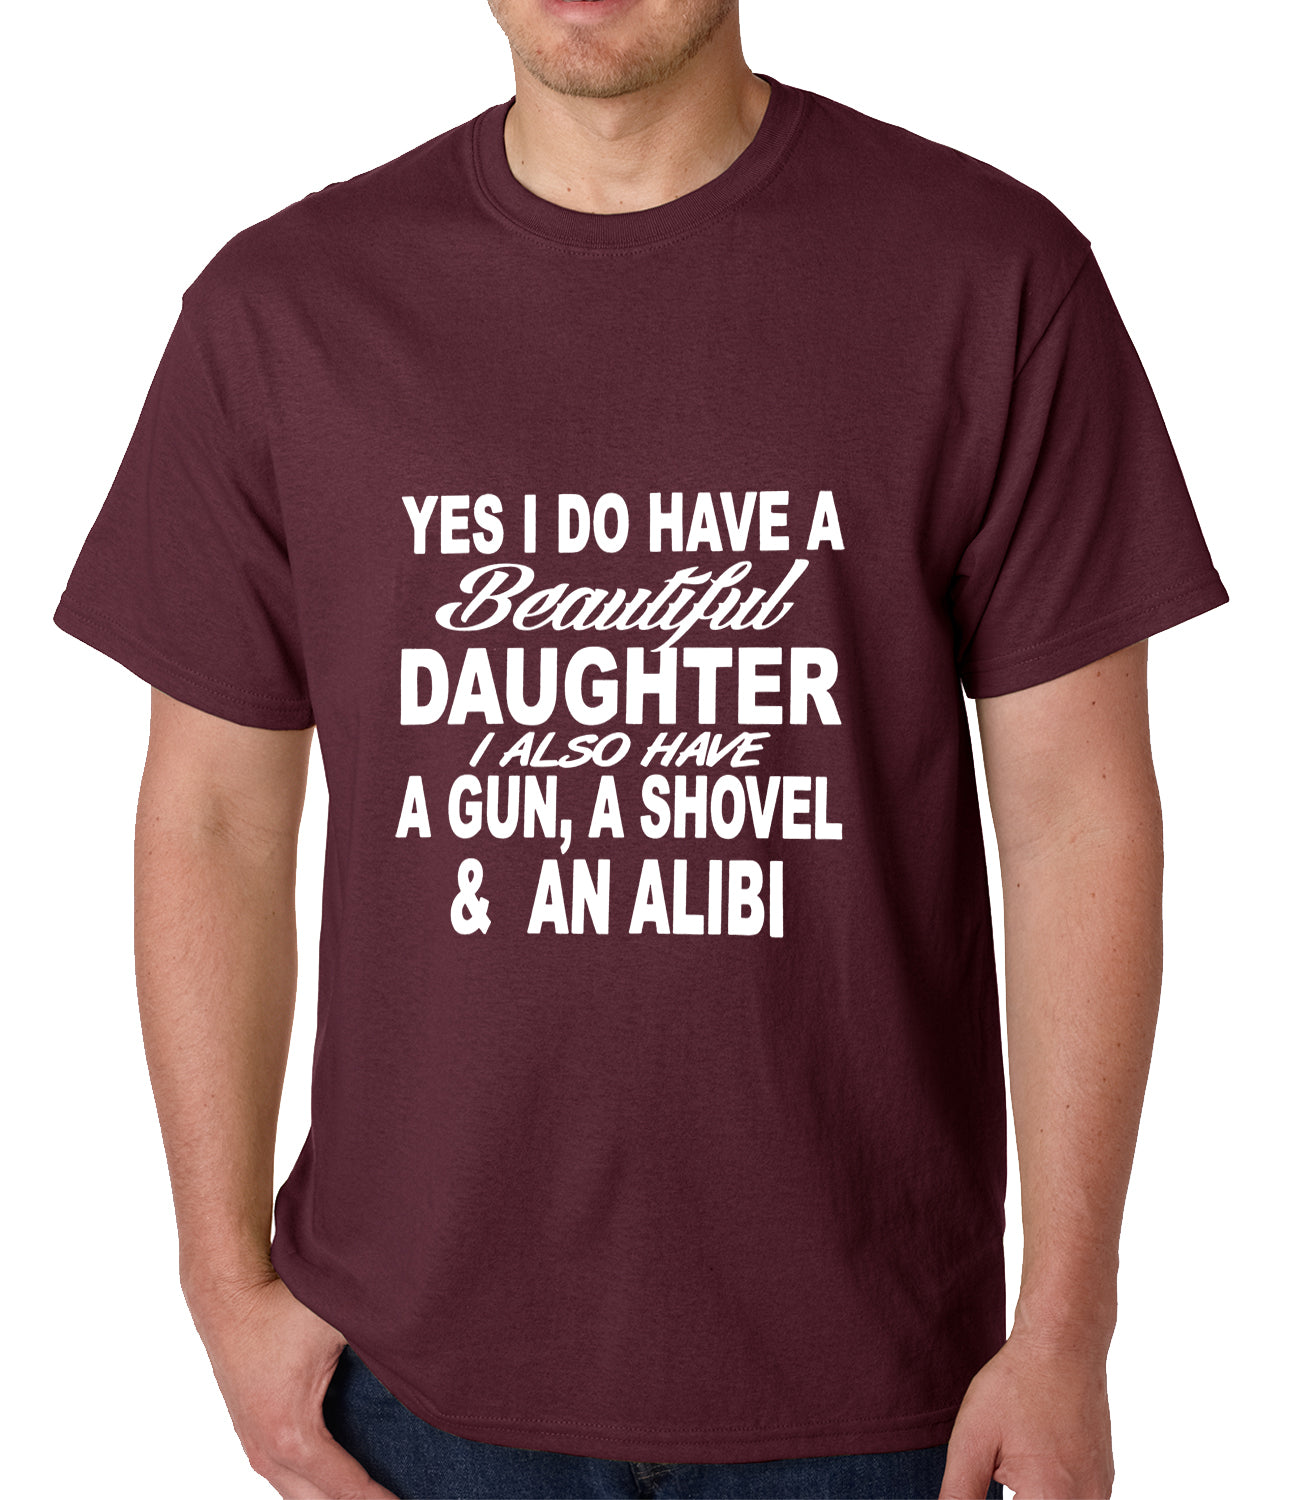 Yes, I Have Beautiful Daughter, A Gun, and An Alibi Mens T-shirt